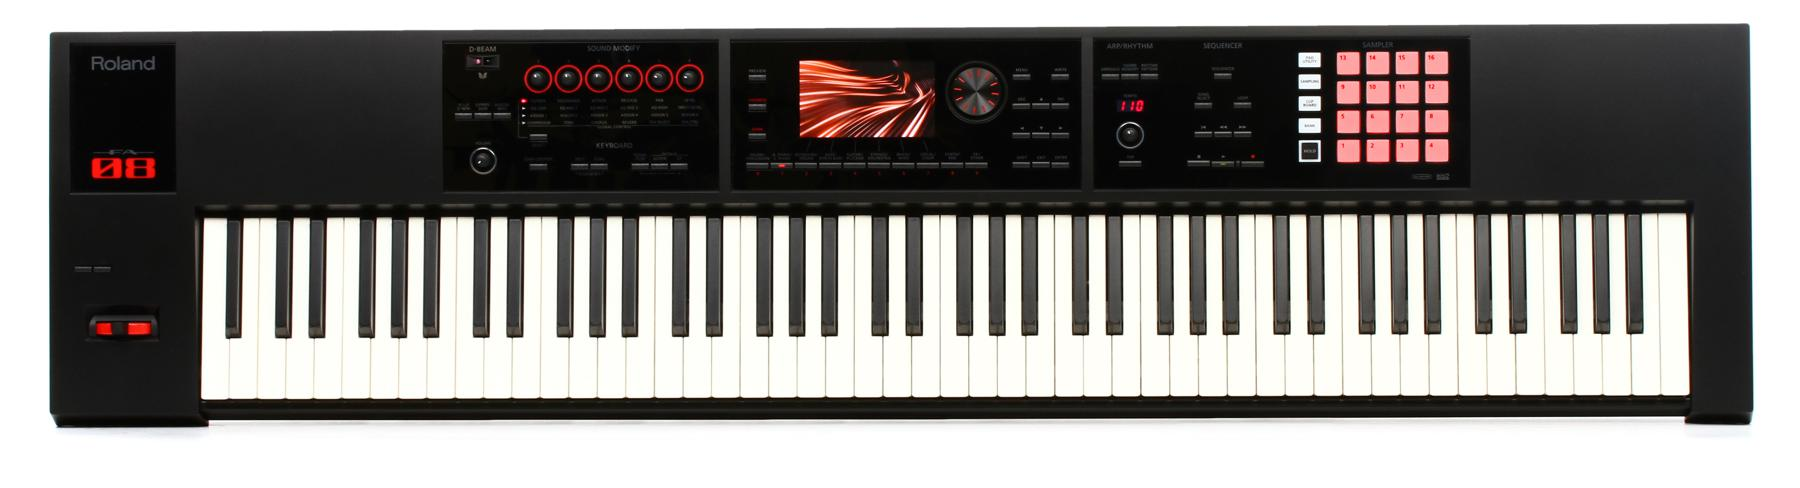 3. Roland 88-key Music Workstation (FA-08)